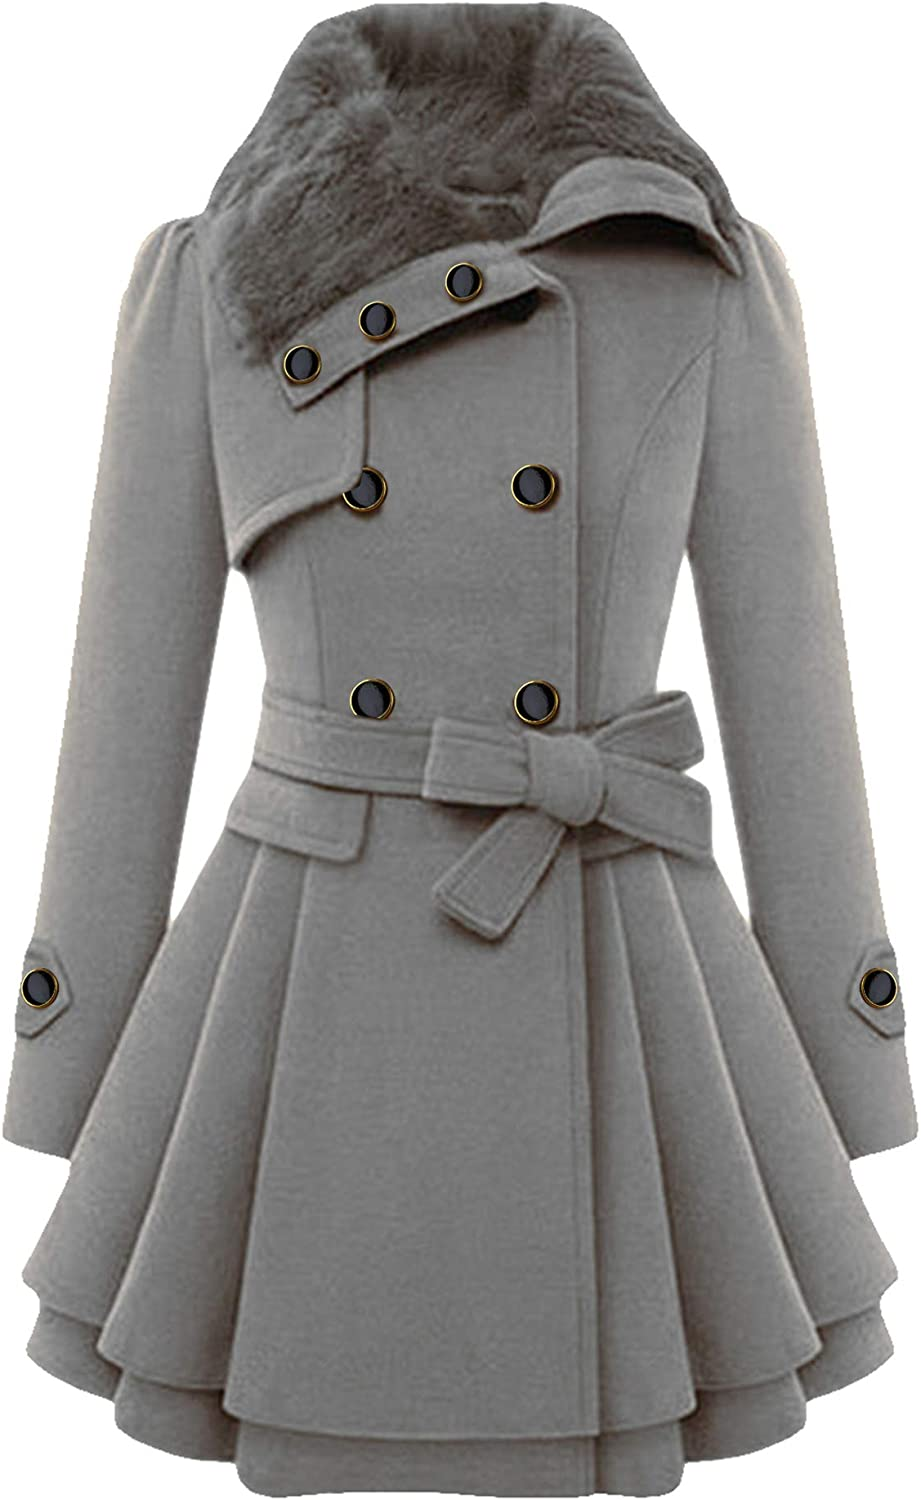 FLITAY Womens Trench Plus Size Casual Pea coat with Belt Hooded Checkered Double Breasted Coat